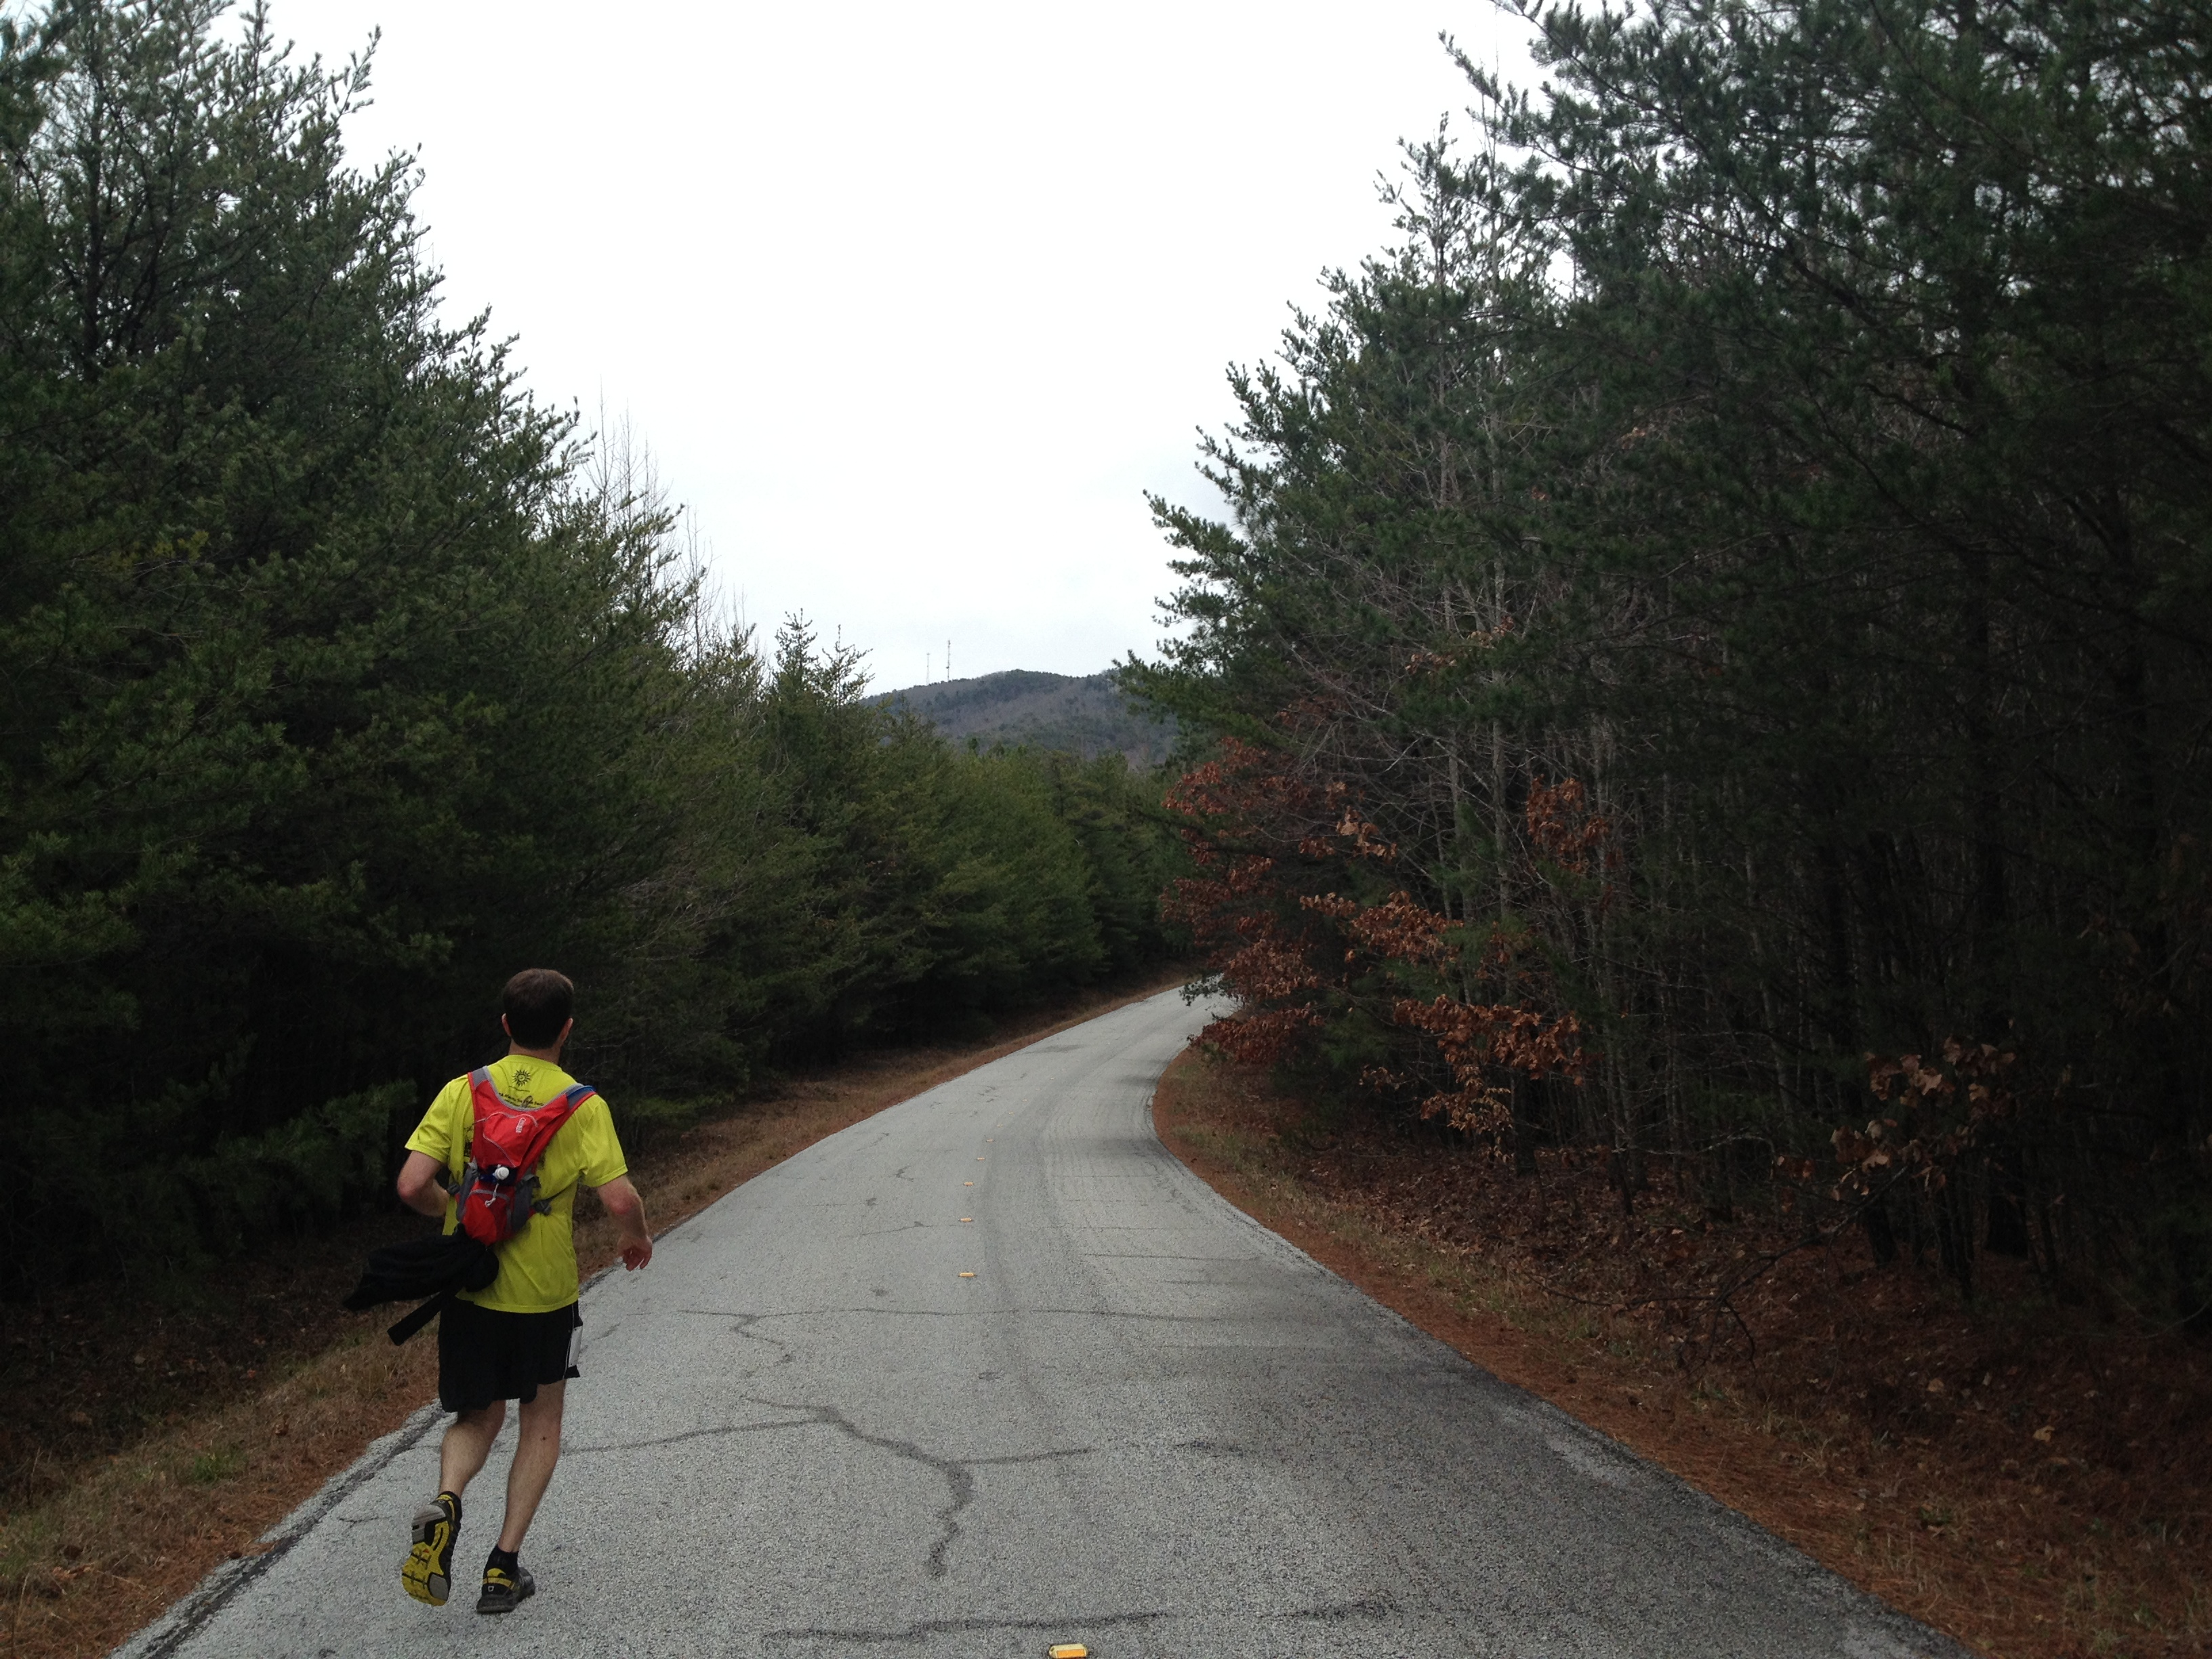 Mt. Cheaha 50k, Talladega National Forest, ultra running, trail running, ultra marathon, 50k training, Alabama